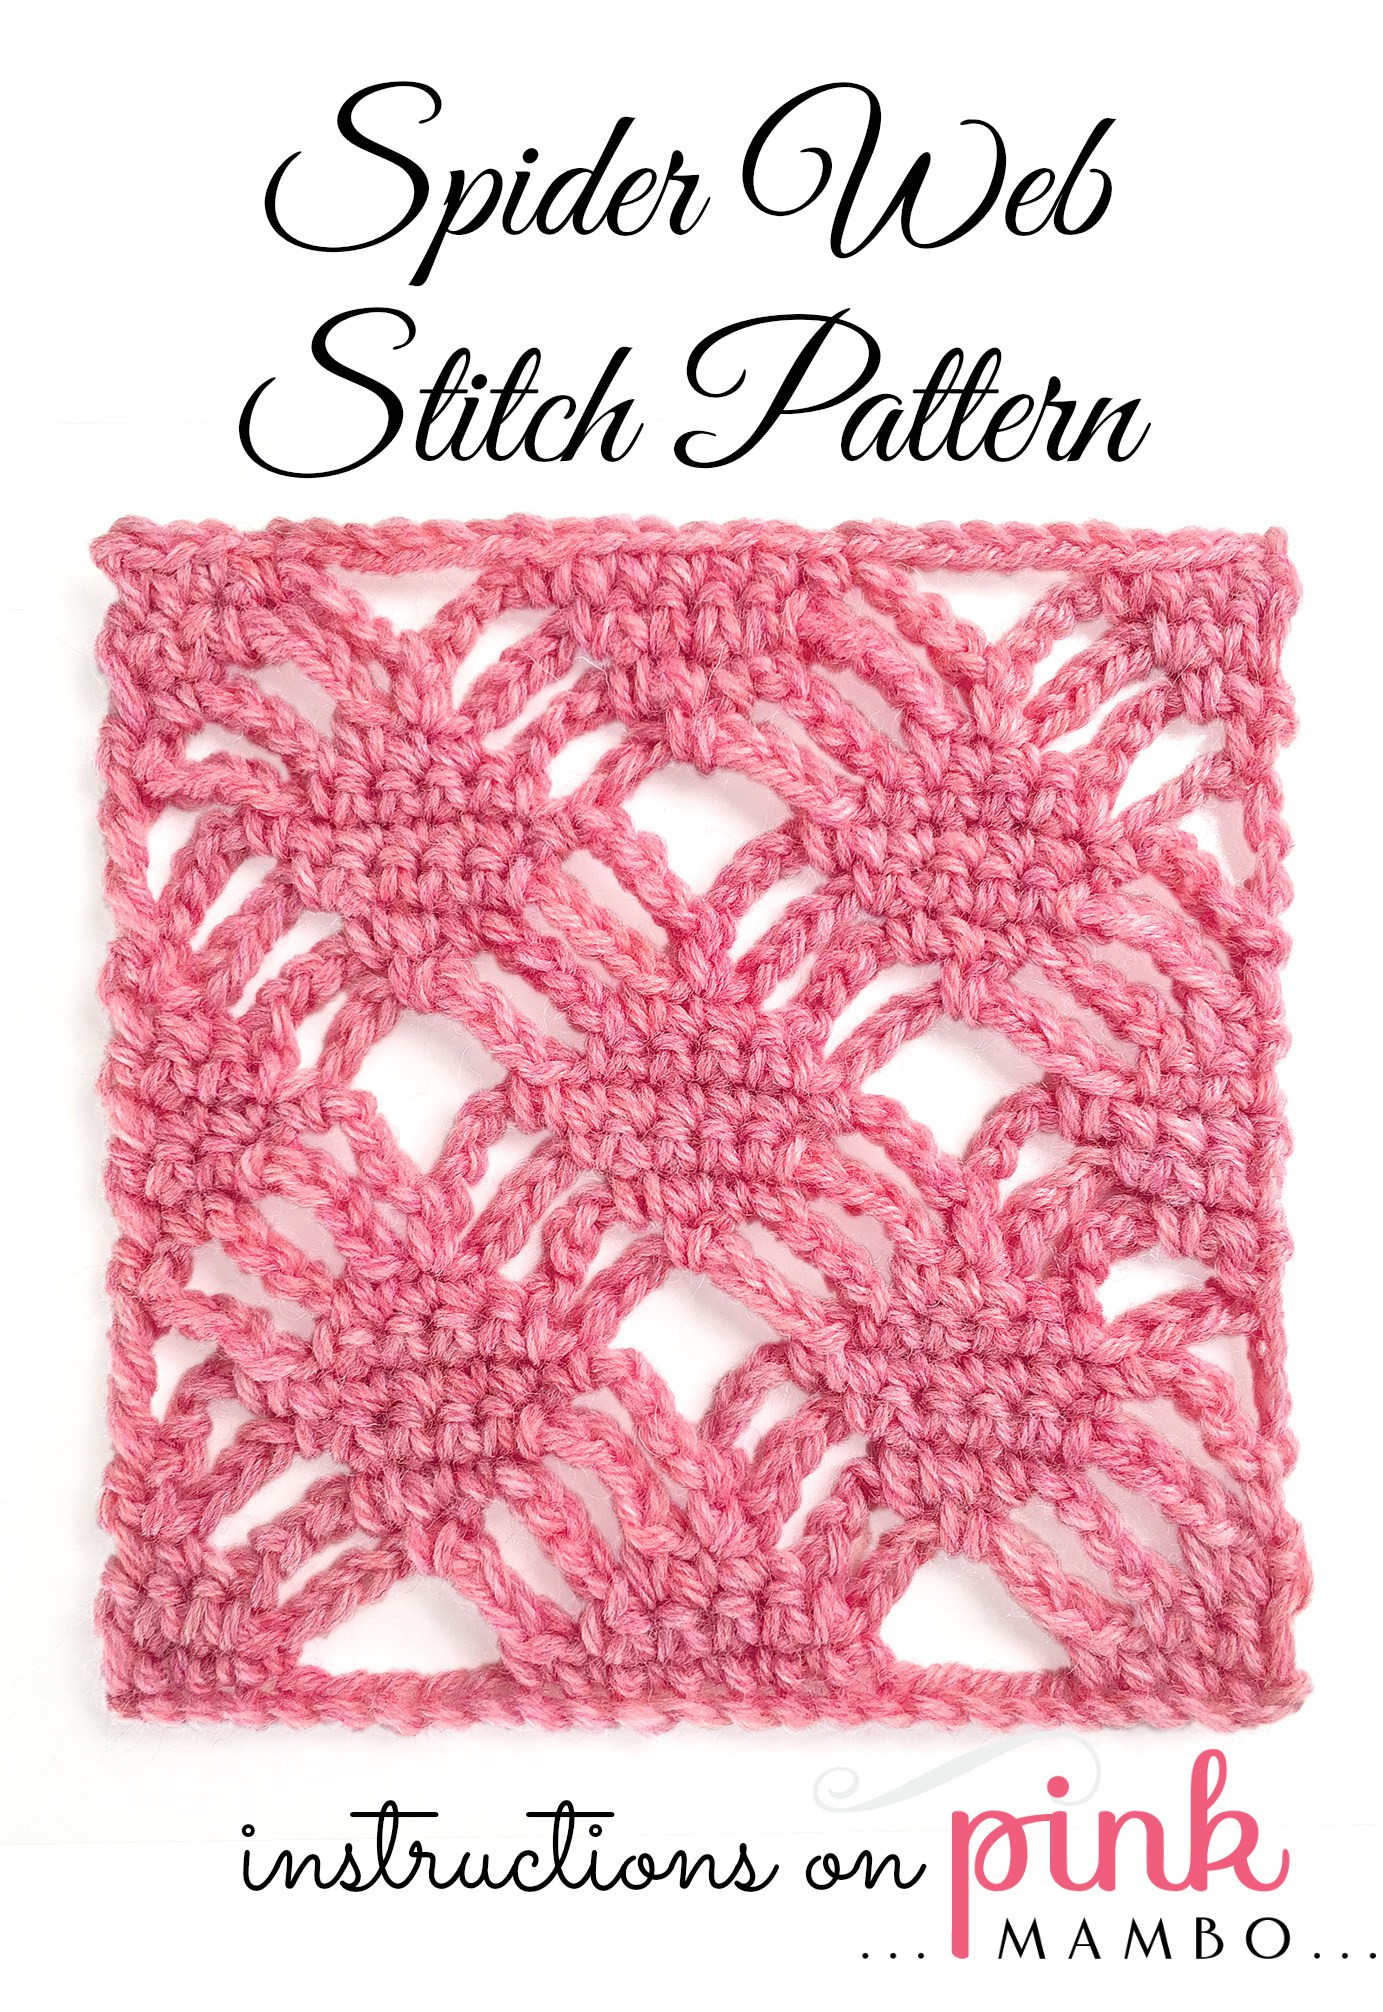 Awesome Spider Web Crochet Stitch Pattern Pink Mambo Lacy Crochet Stitches Of New 49 Photos Lacy Crochet Stitches